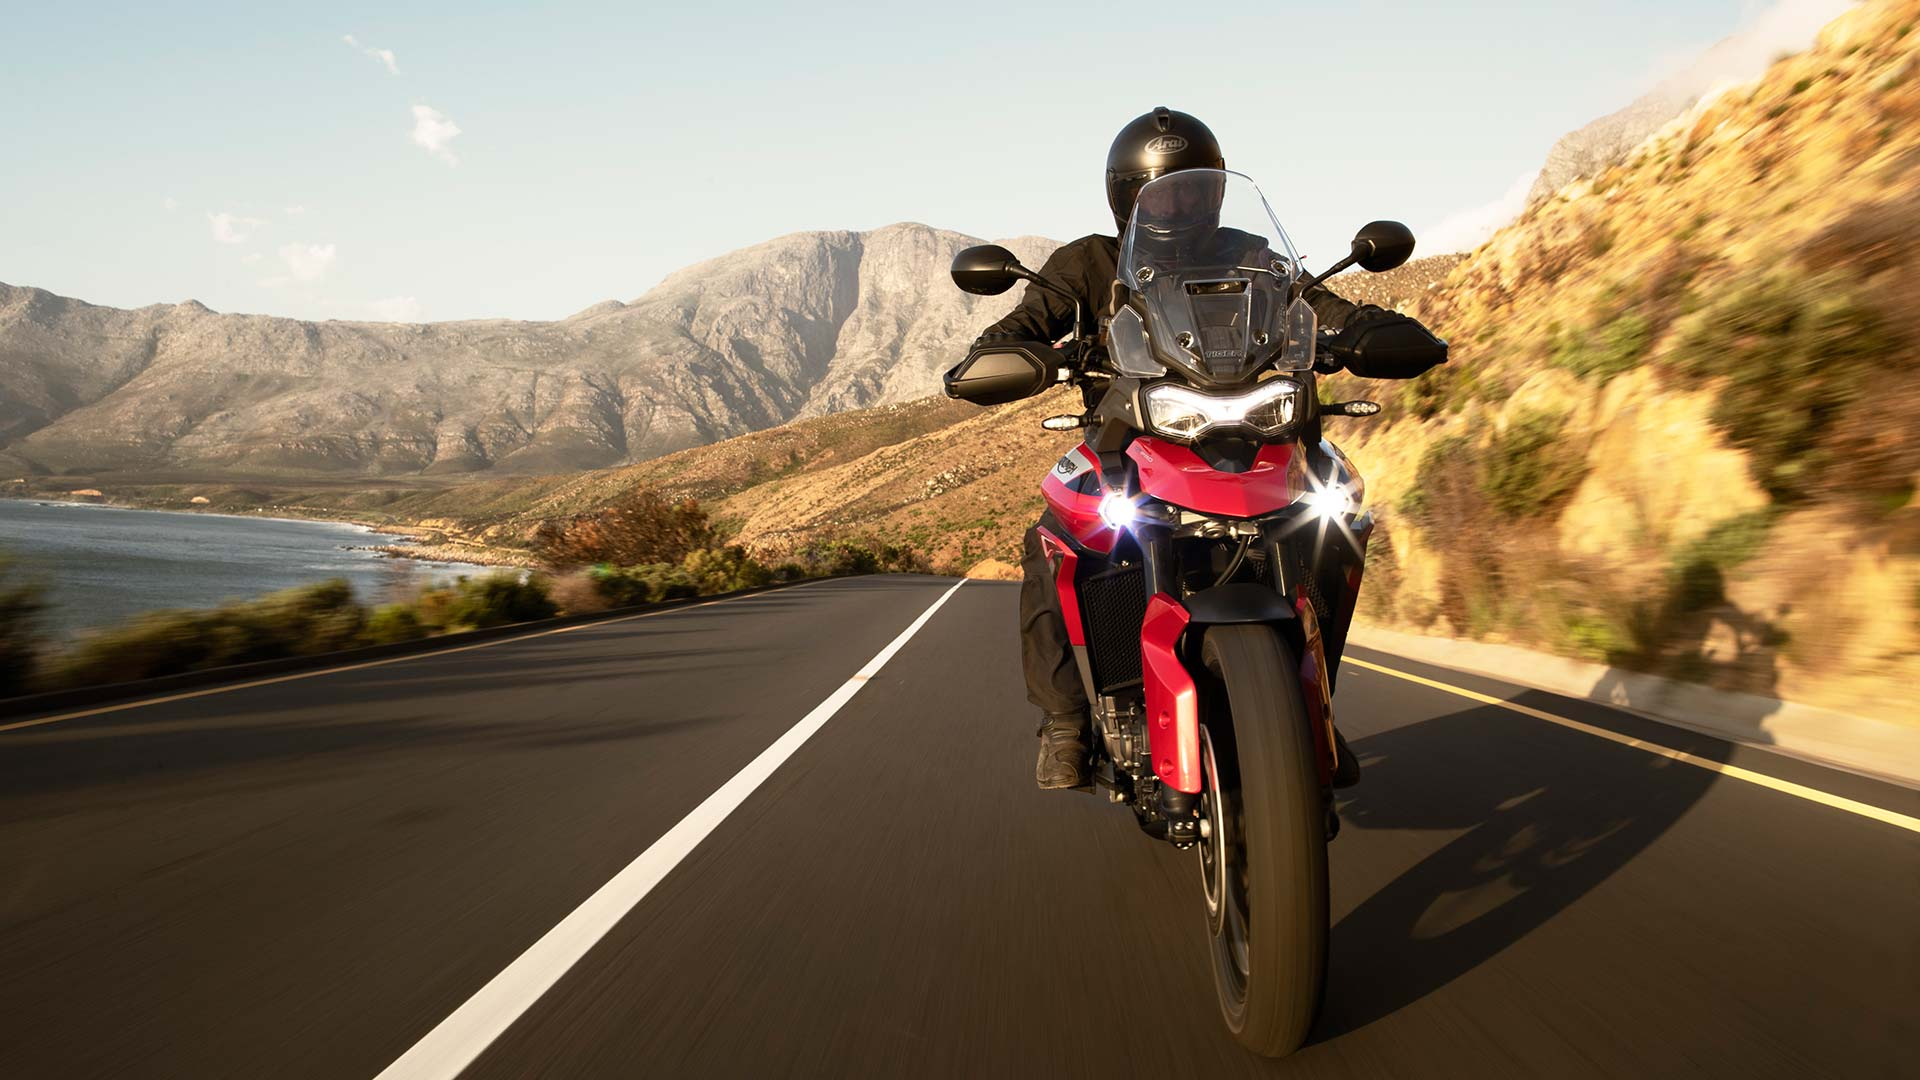 Triumph Tiger 900 GT Pro in Korosi Red powering down South Africa's roads